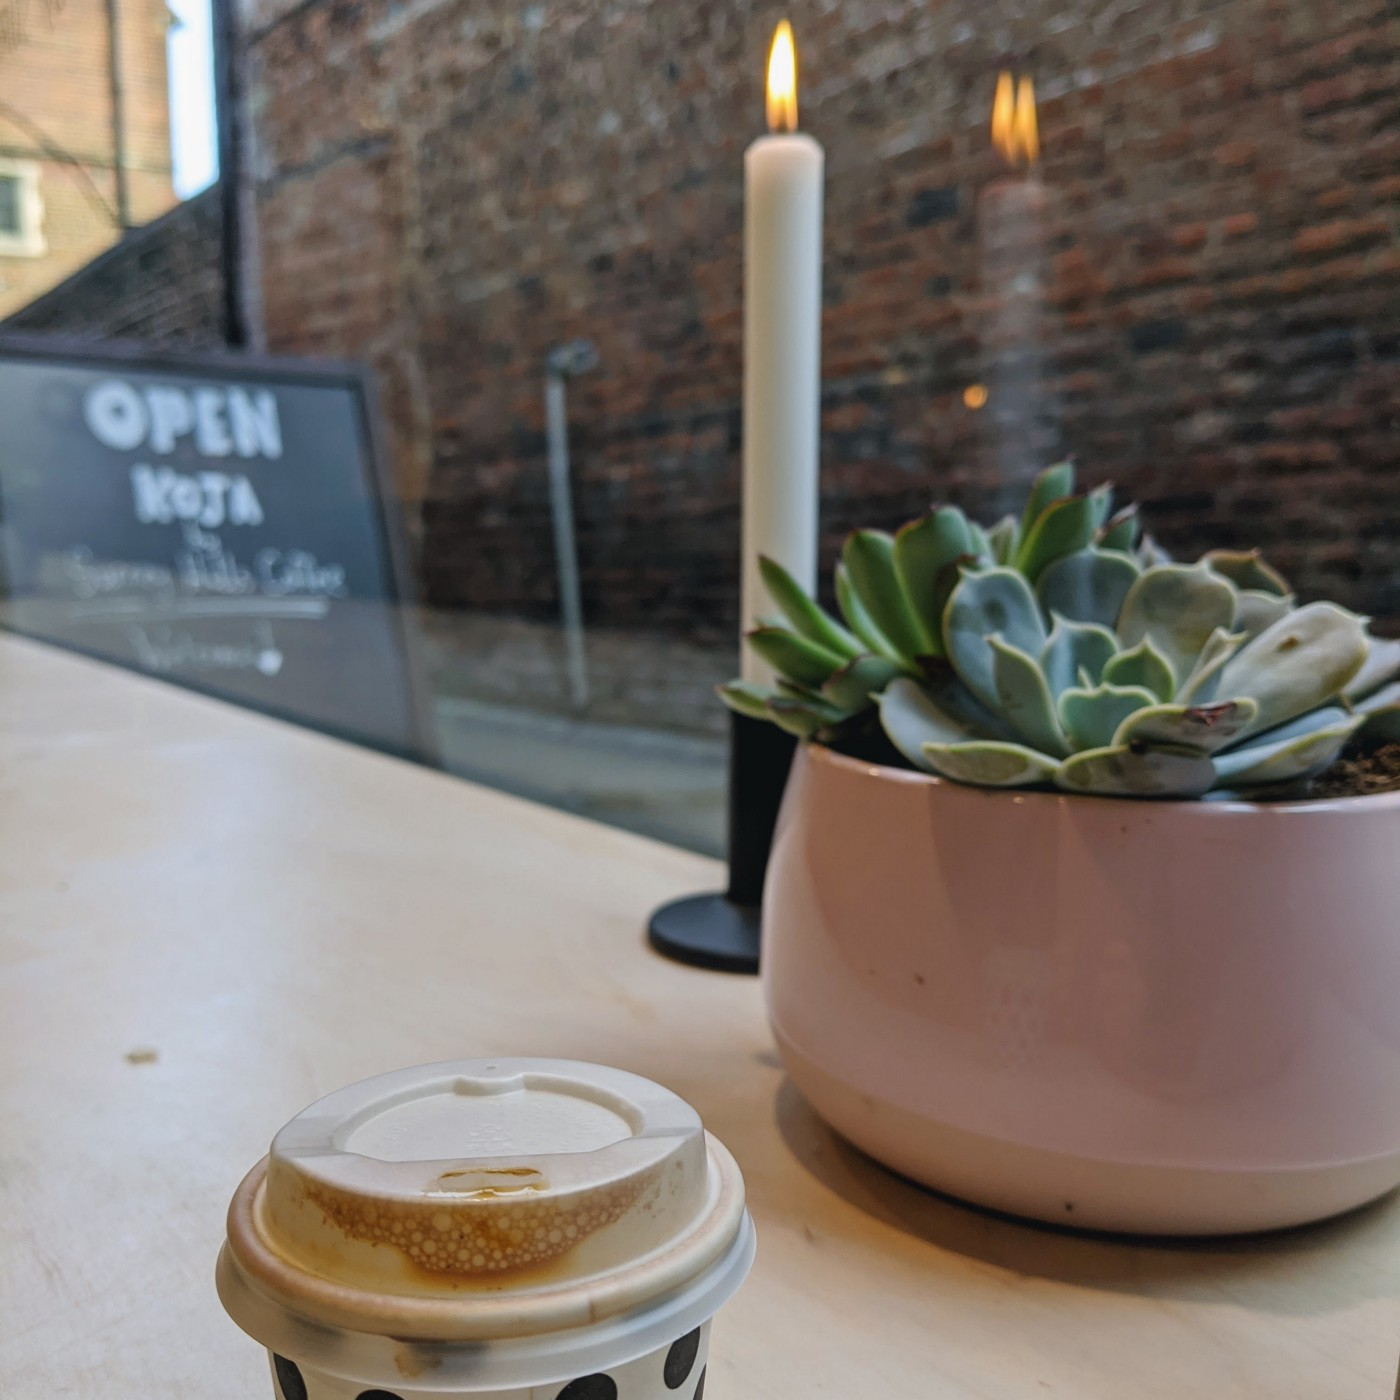 A coffee shop table with a coffee cup, a candle and a plant. In the background, a sign says that the cafe is open.